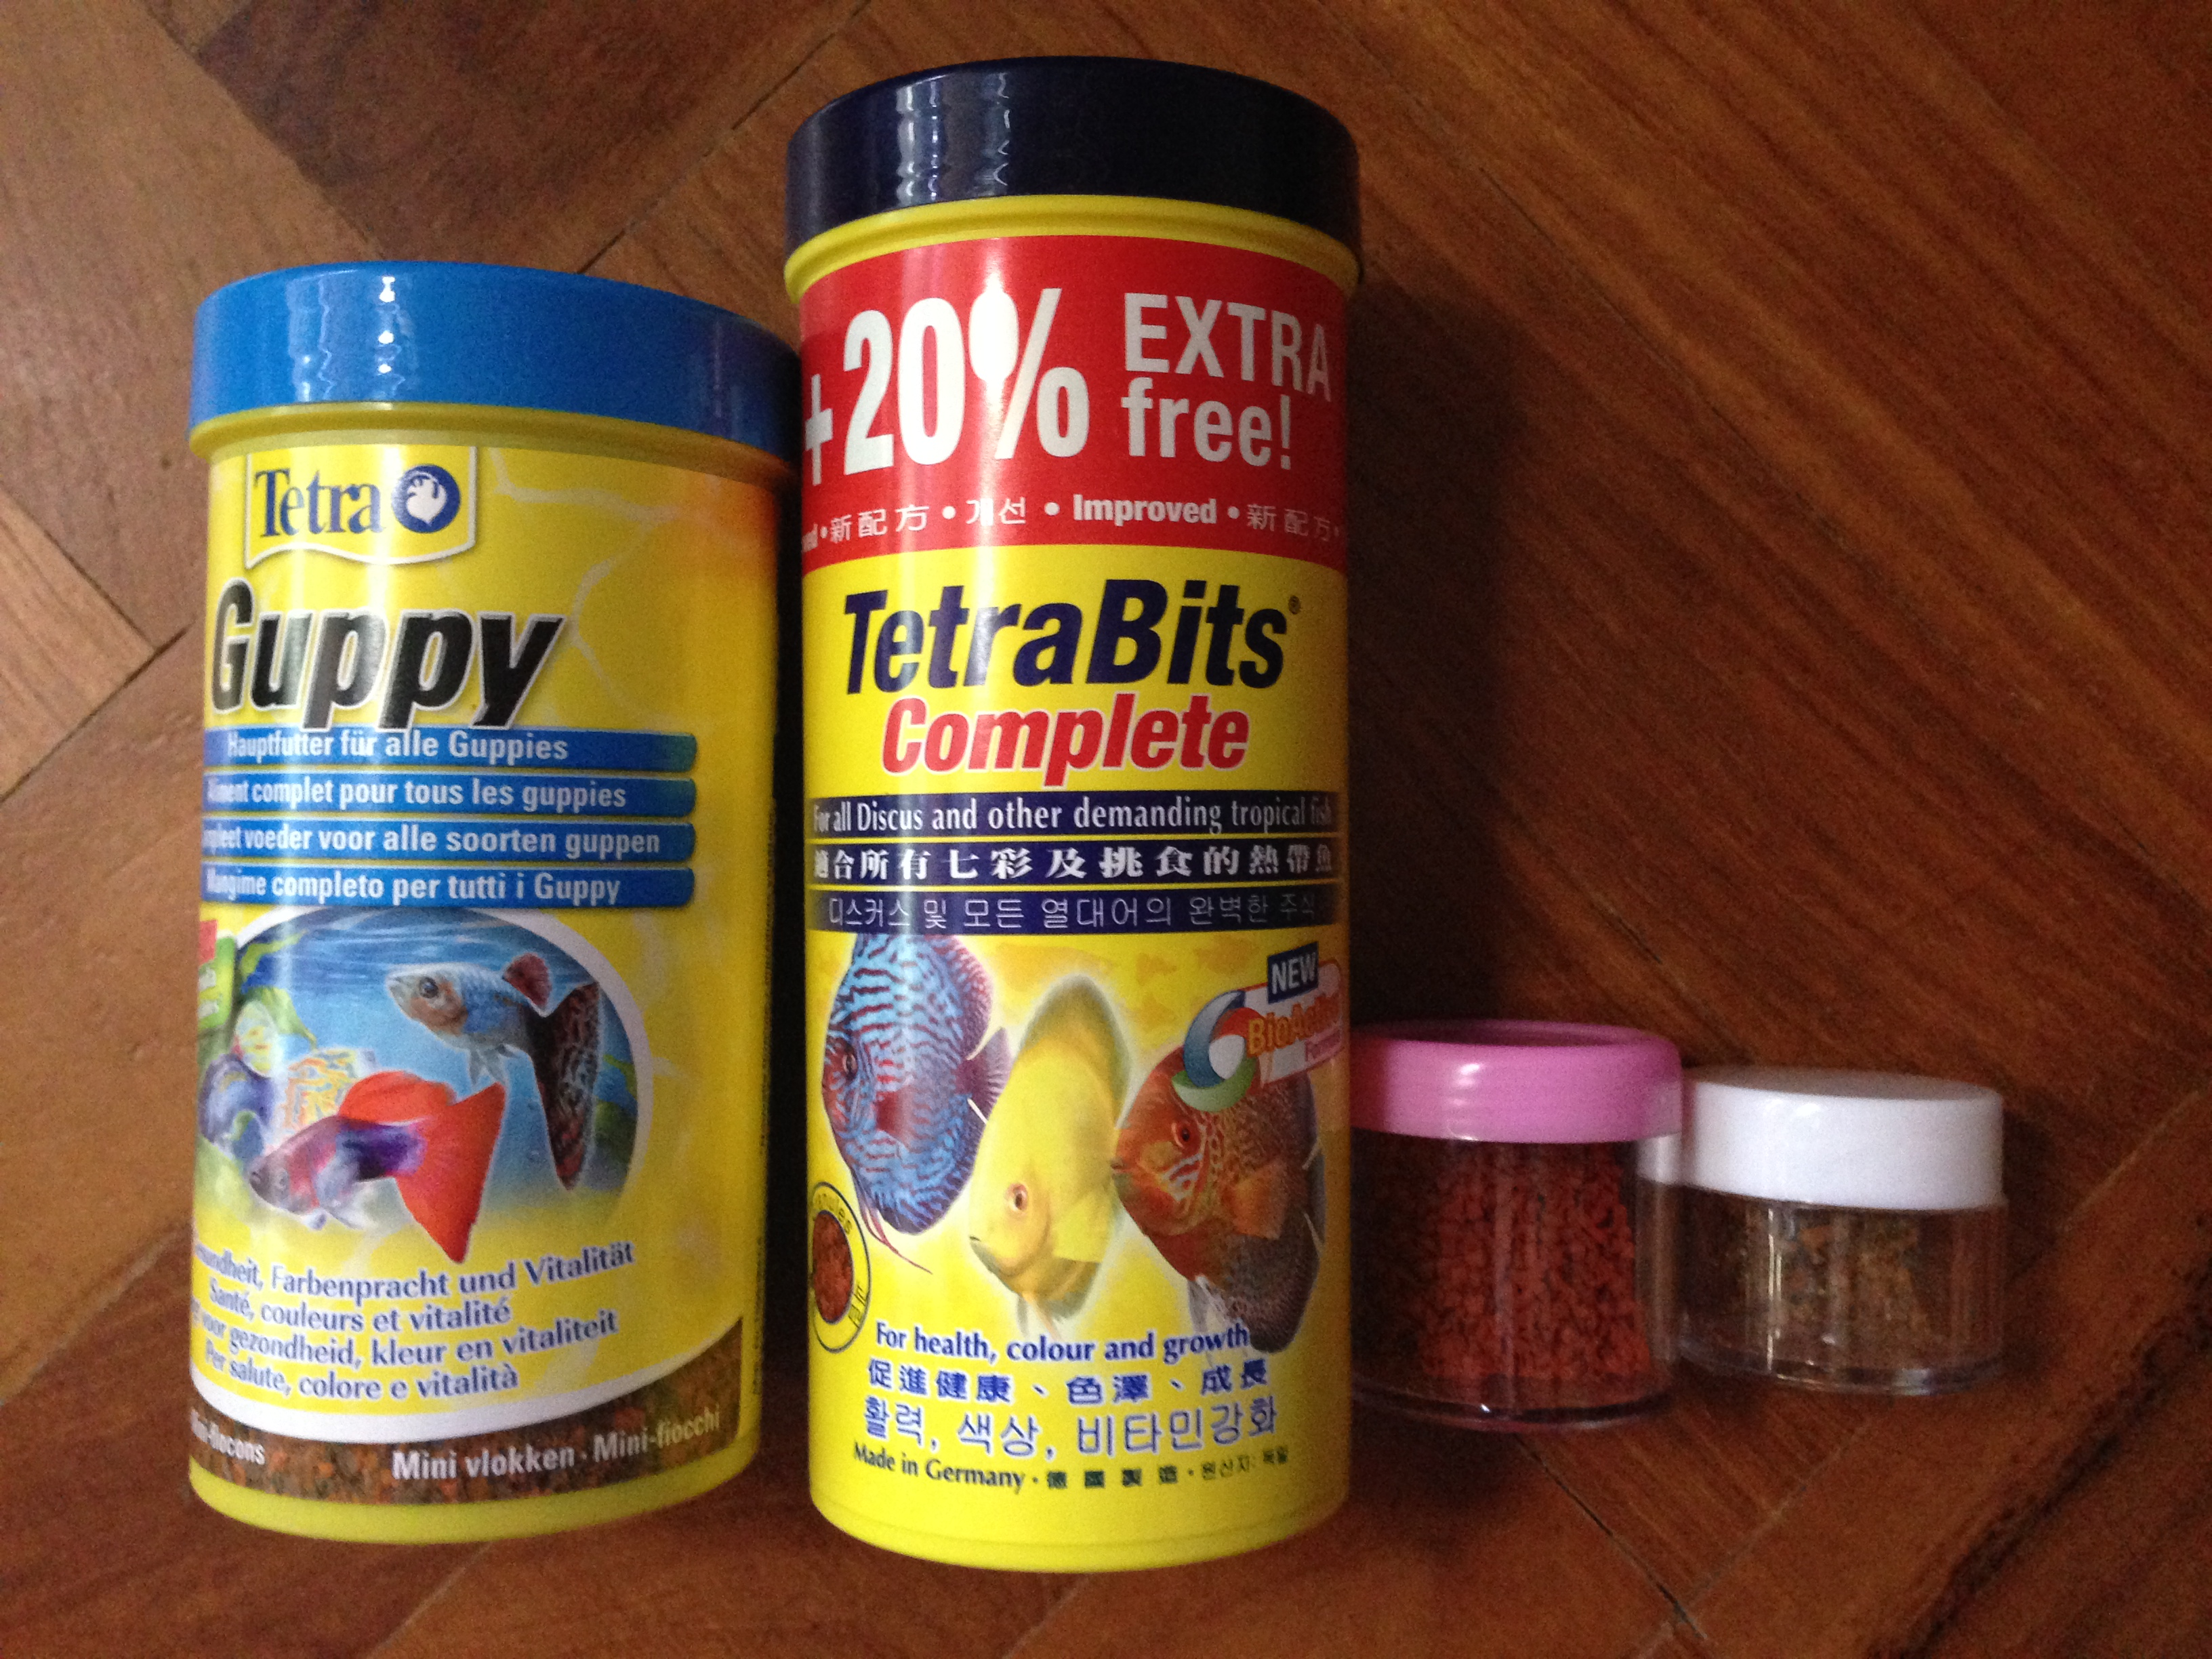 Guppy Nutrition: Feeding Guppies with Dry Fish food